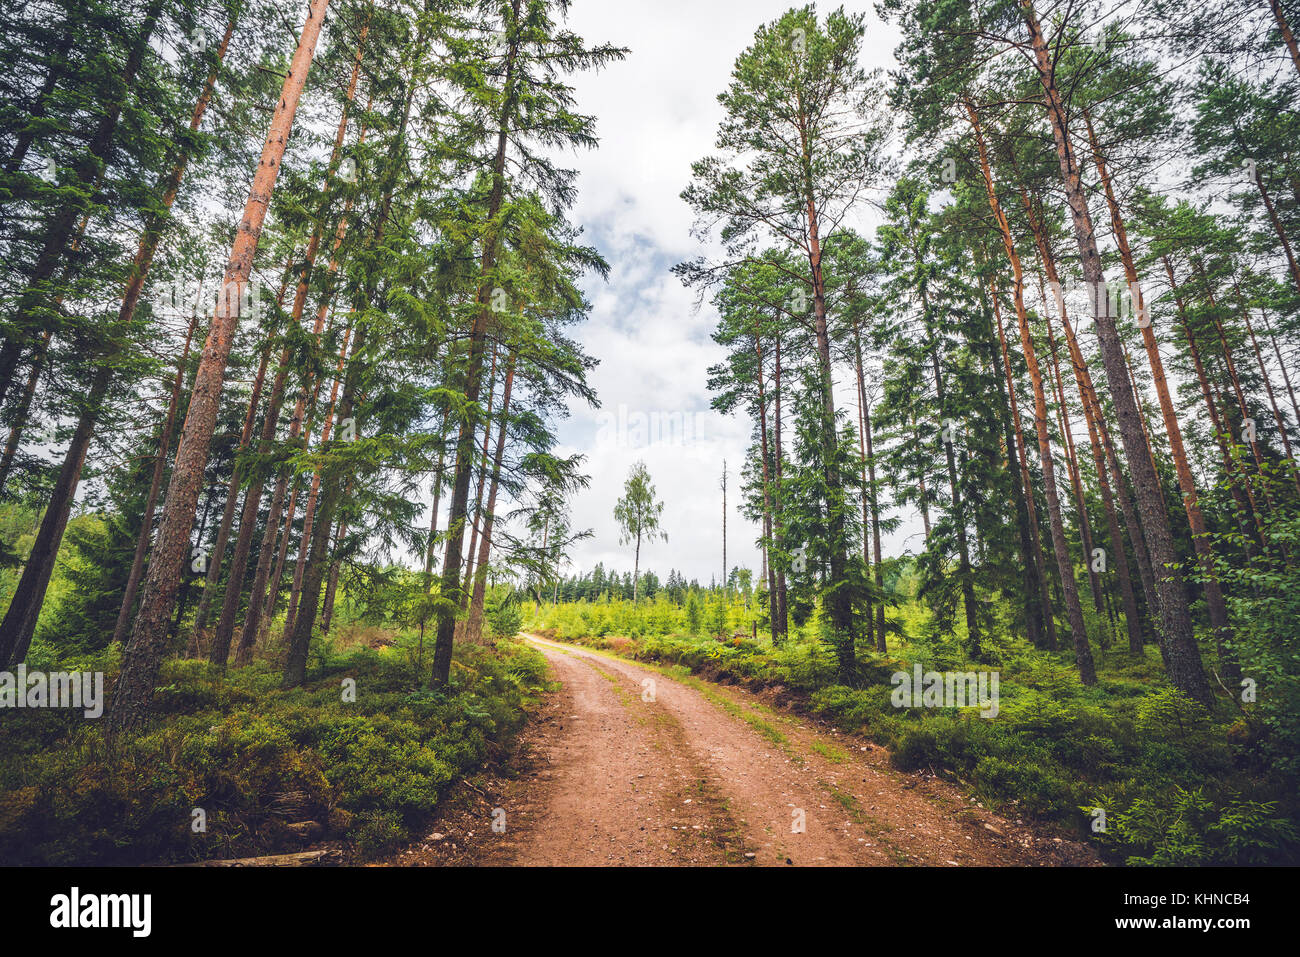 Dirt road running through a pine tree forest in the summer with tall green trees - Stock Image